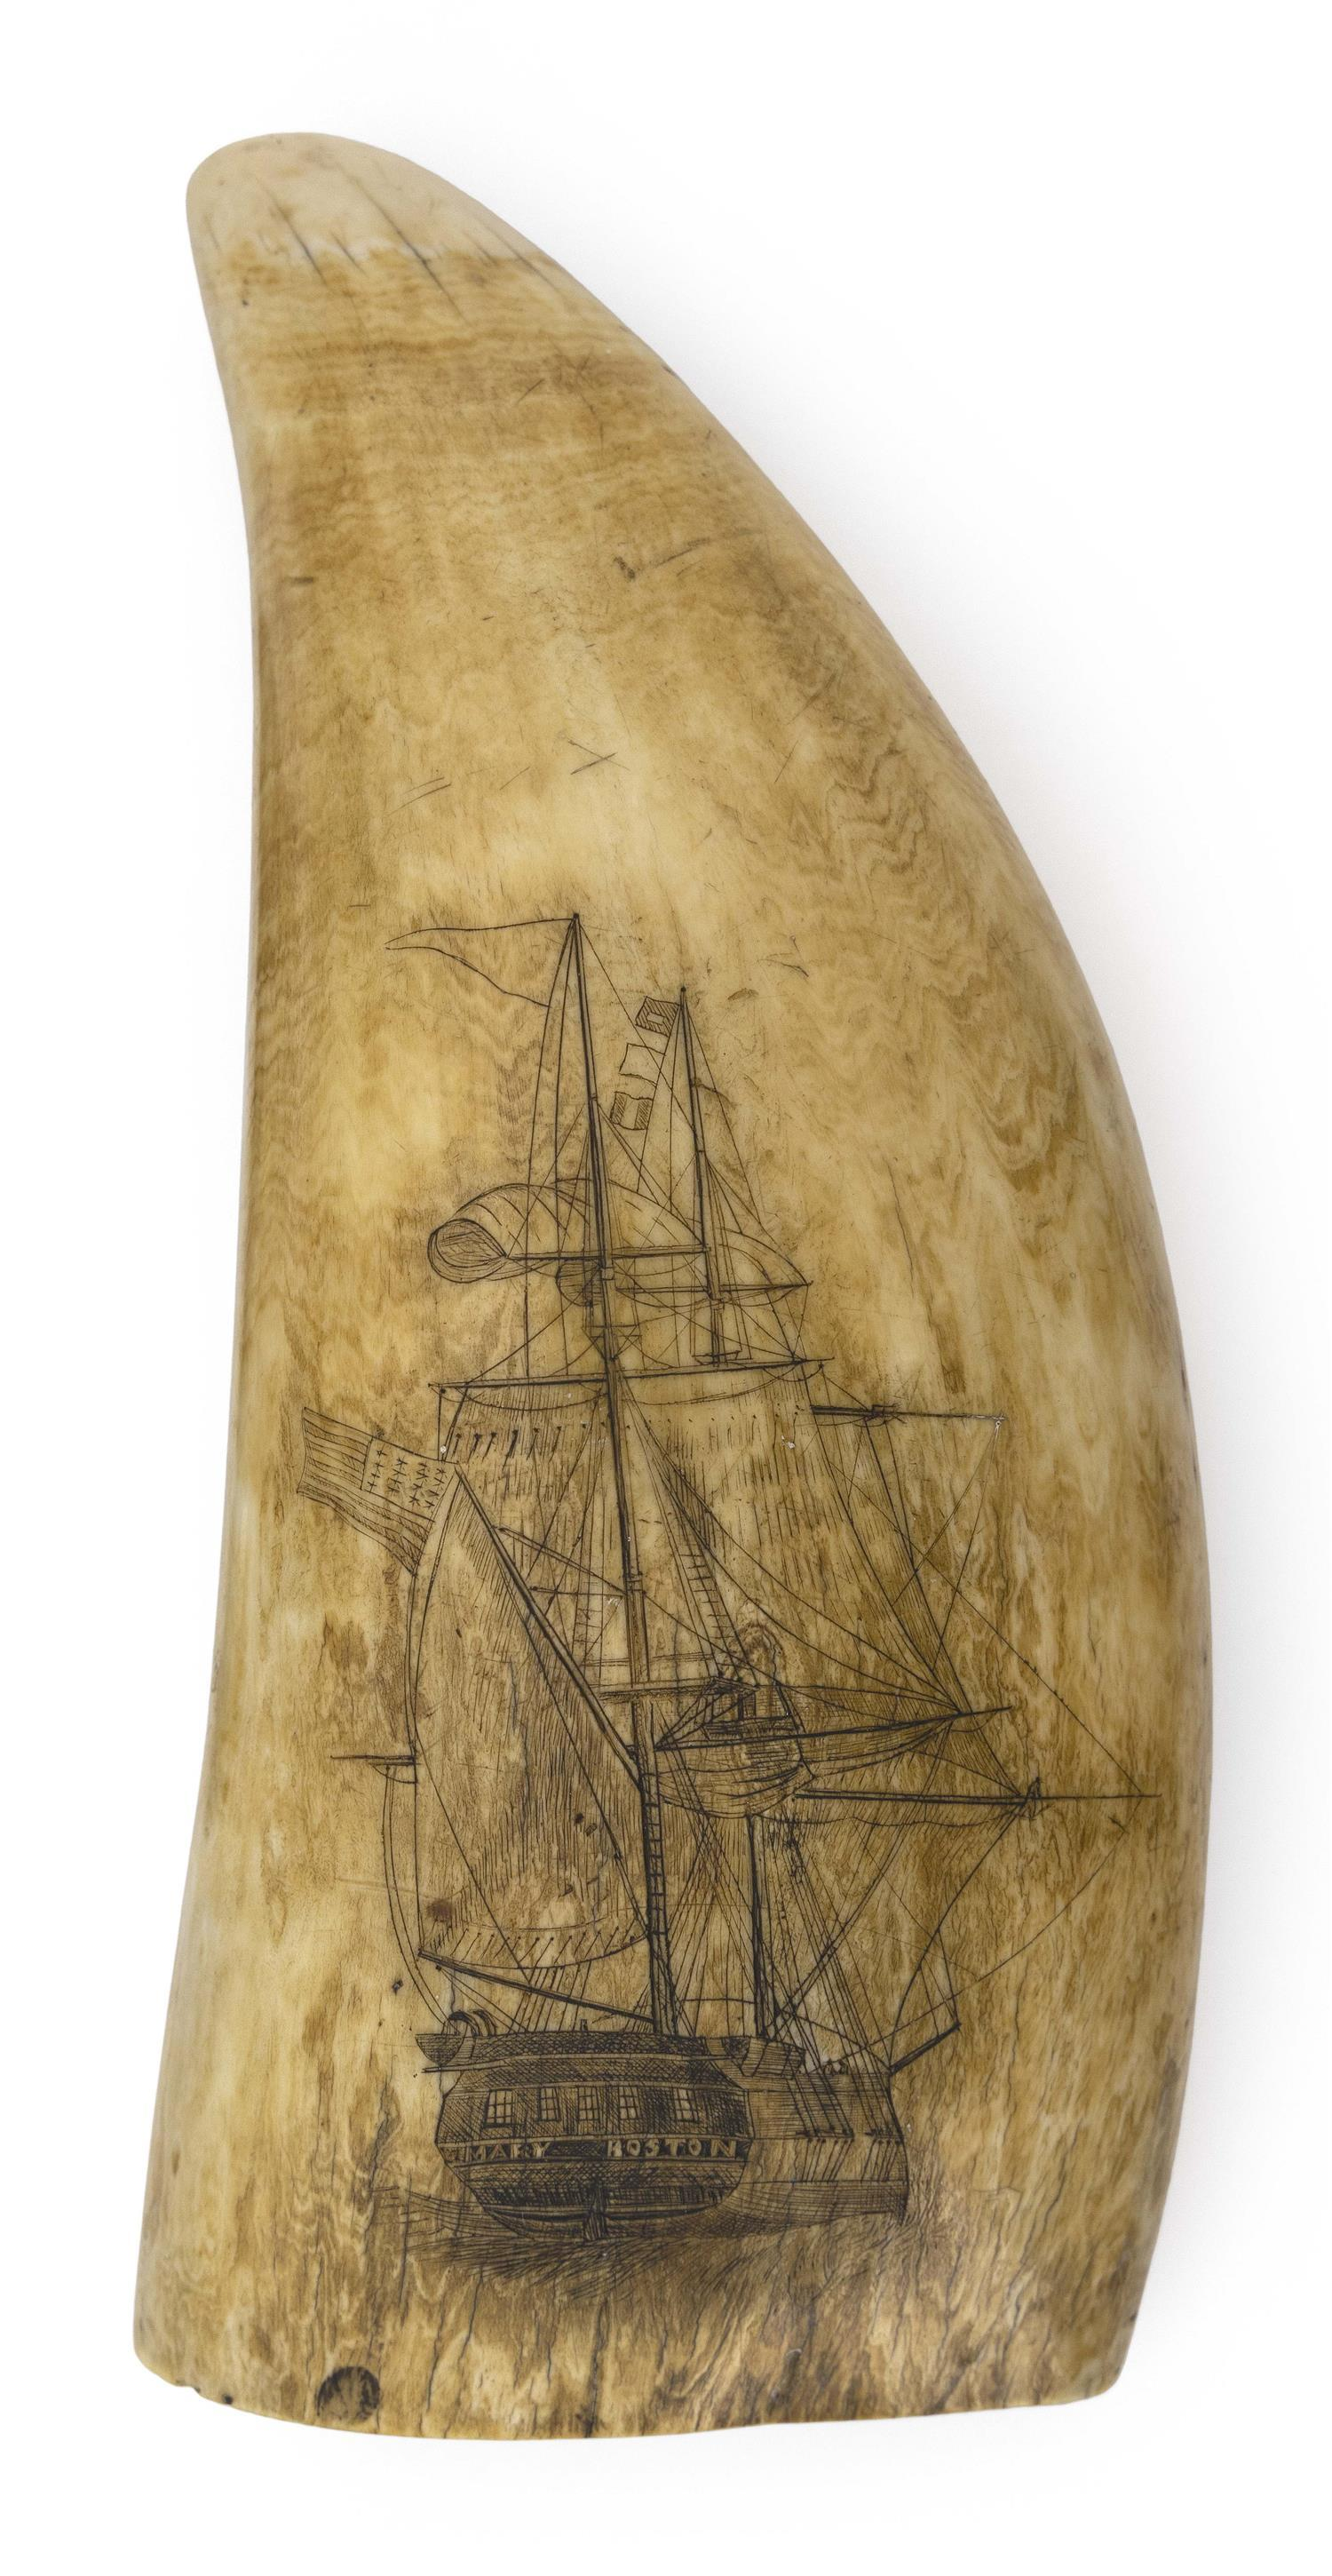 LARGE SCRIMSHAW WHALE'S TOOTH WITH SHIP PORTRAITS Obverse depicts a bow-view portrait and reverse depicts a stern-view portrait of t..